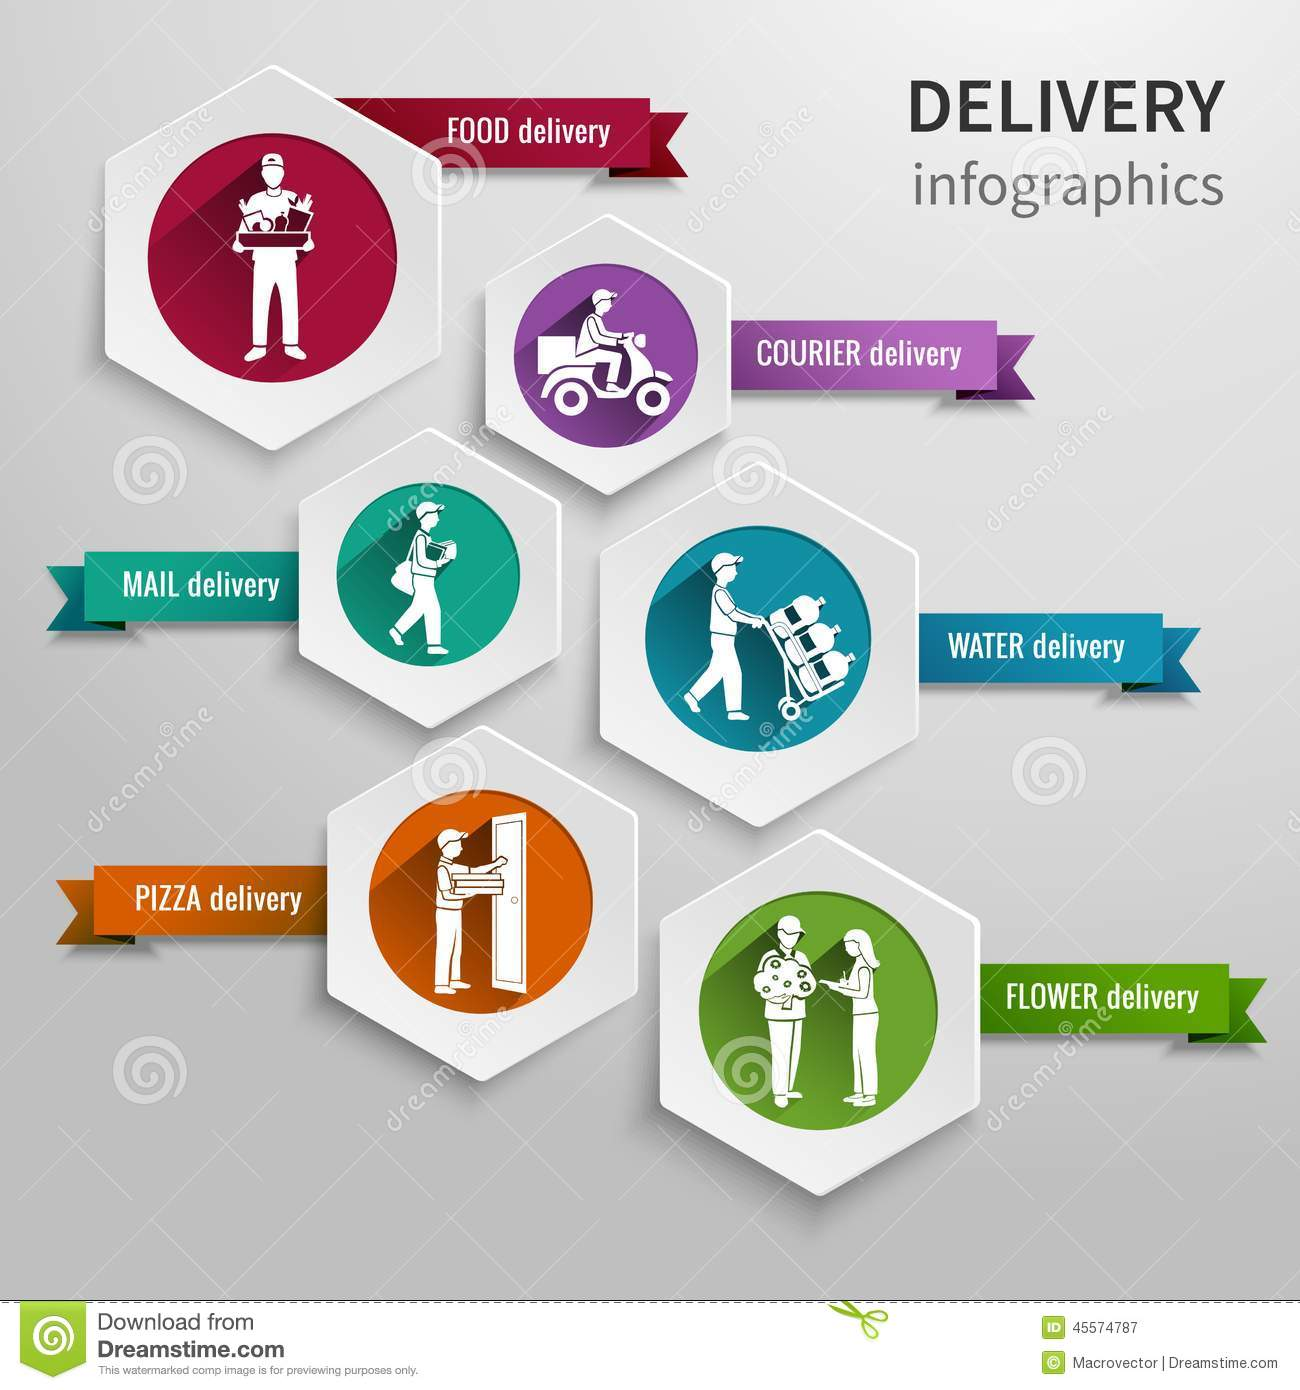 drone pizza delivery with Stock Illustration Delivery Infographic Set Hexagon Food Courier Water Flower Pizza Mail Elements Vector Illustration Image45574787 on Forget Delivery Drones Meet Your New Delivery Robot moreover Stock Illustration Delivery Infographic Set Hexagon Food Courier Water Flower Pizza Mail Elements Vector Illustration Image45574787 additionally E merce Home Deliveries In The 4 0 Age furthermore Do Gooder Drones together with Gizoye.